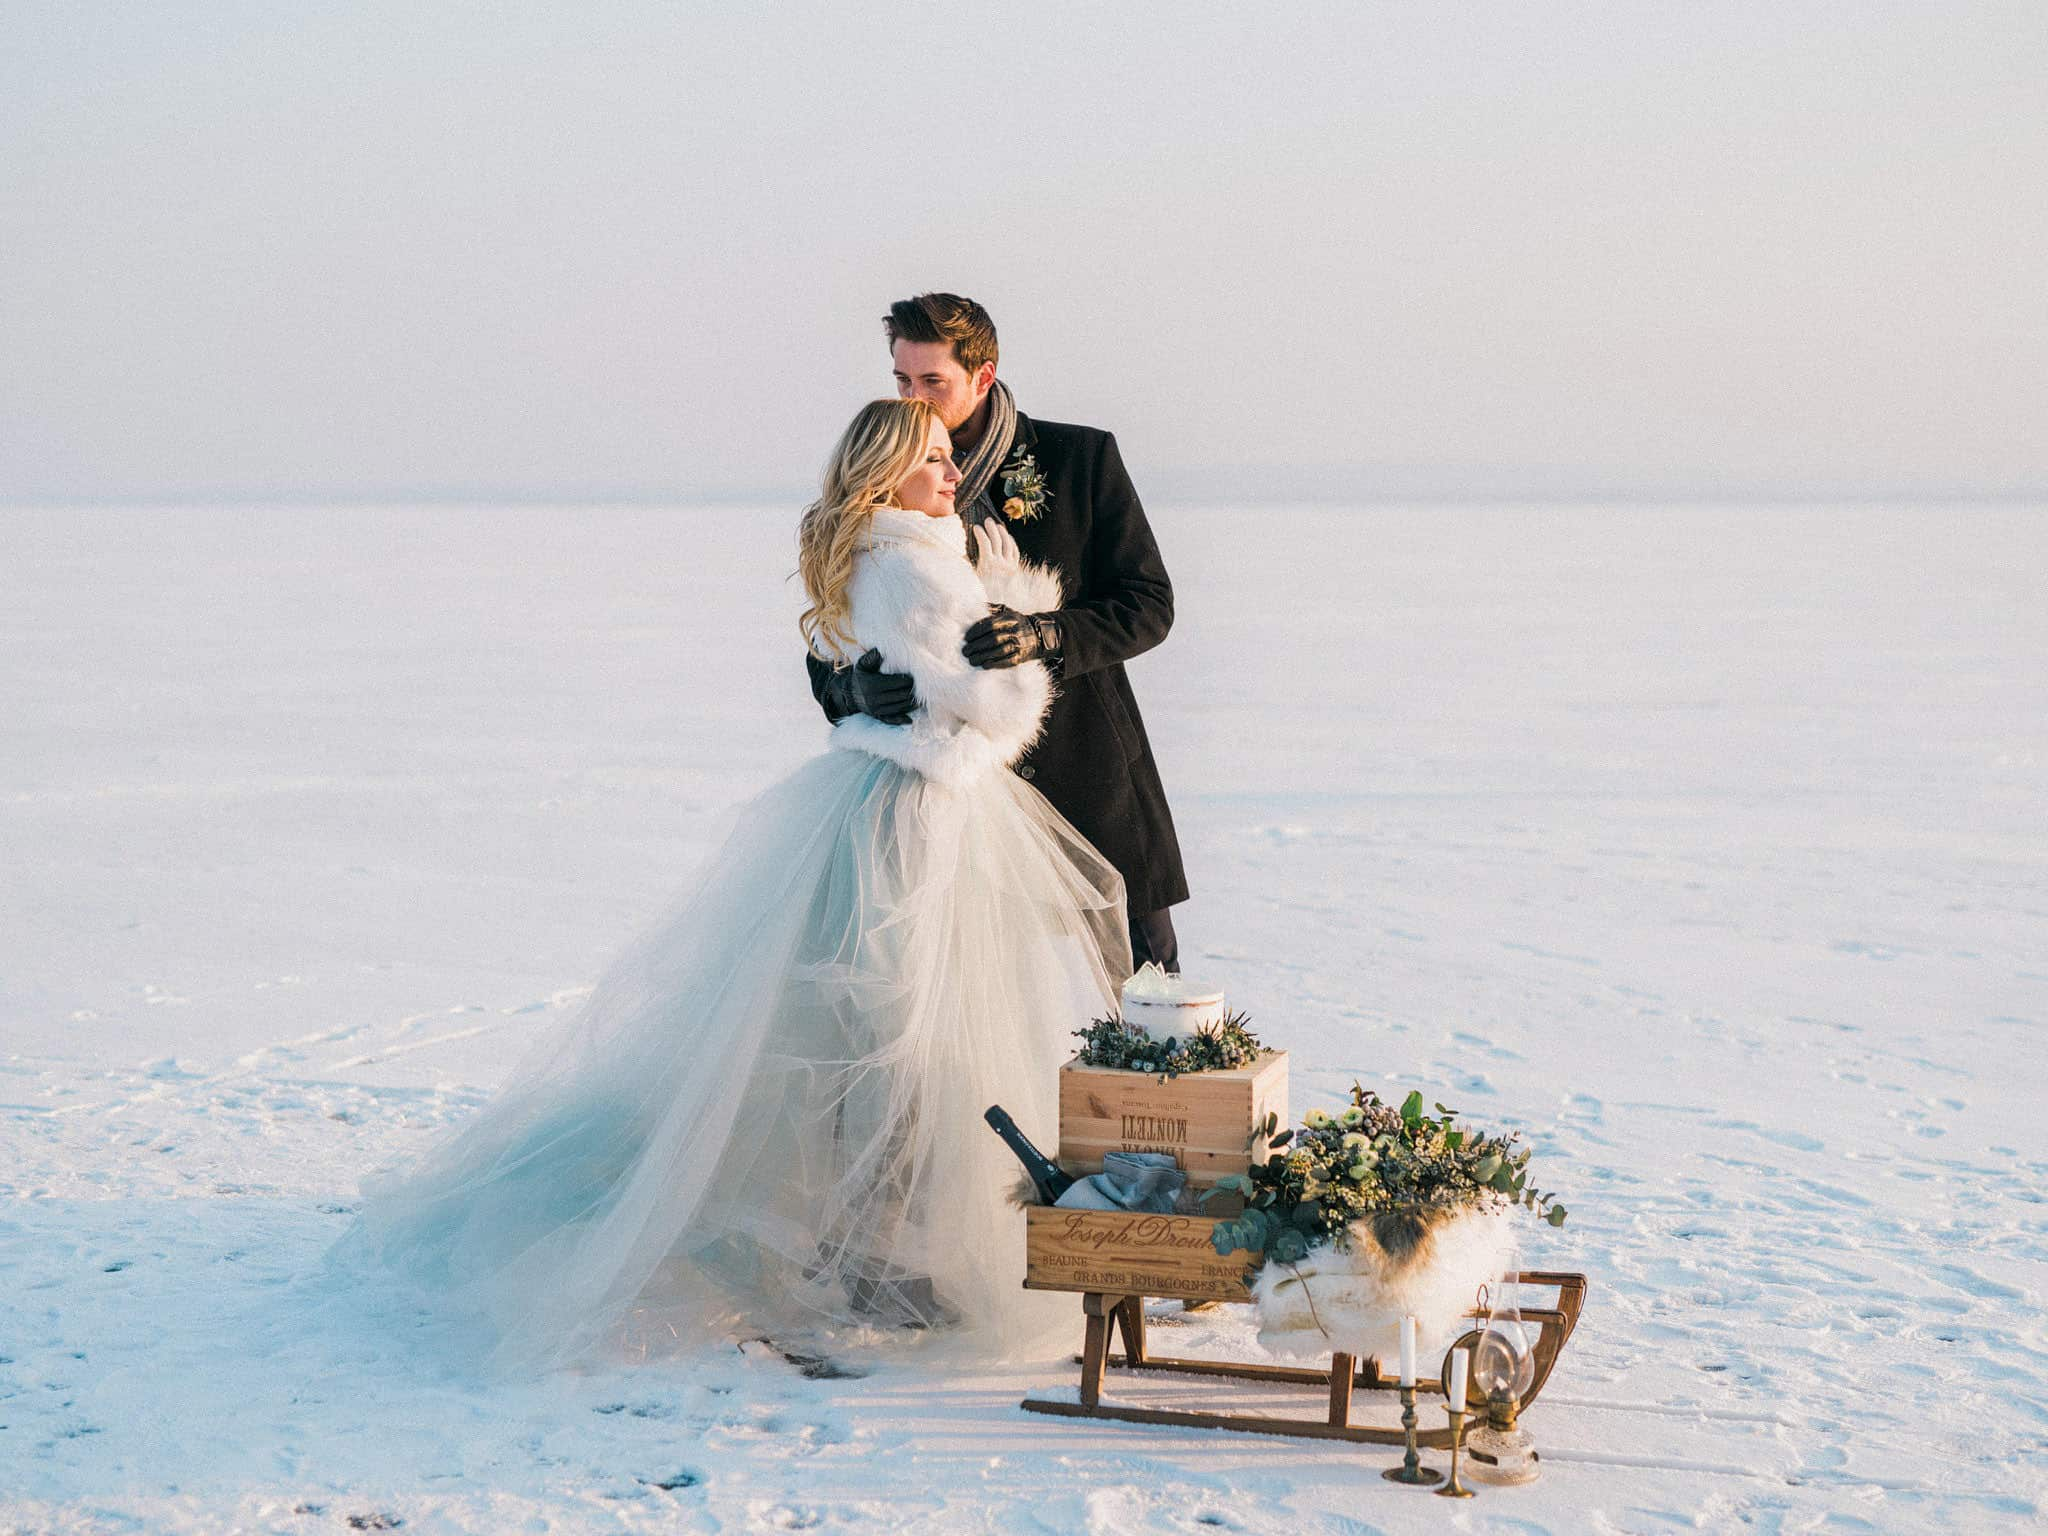 38_wedoverhills_elopement_winter_scenery_embrace